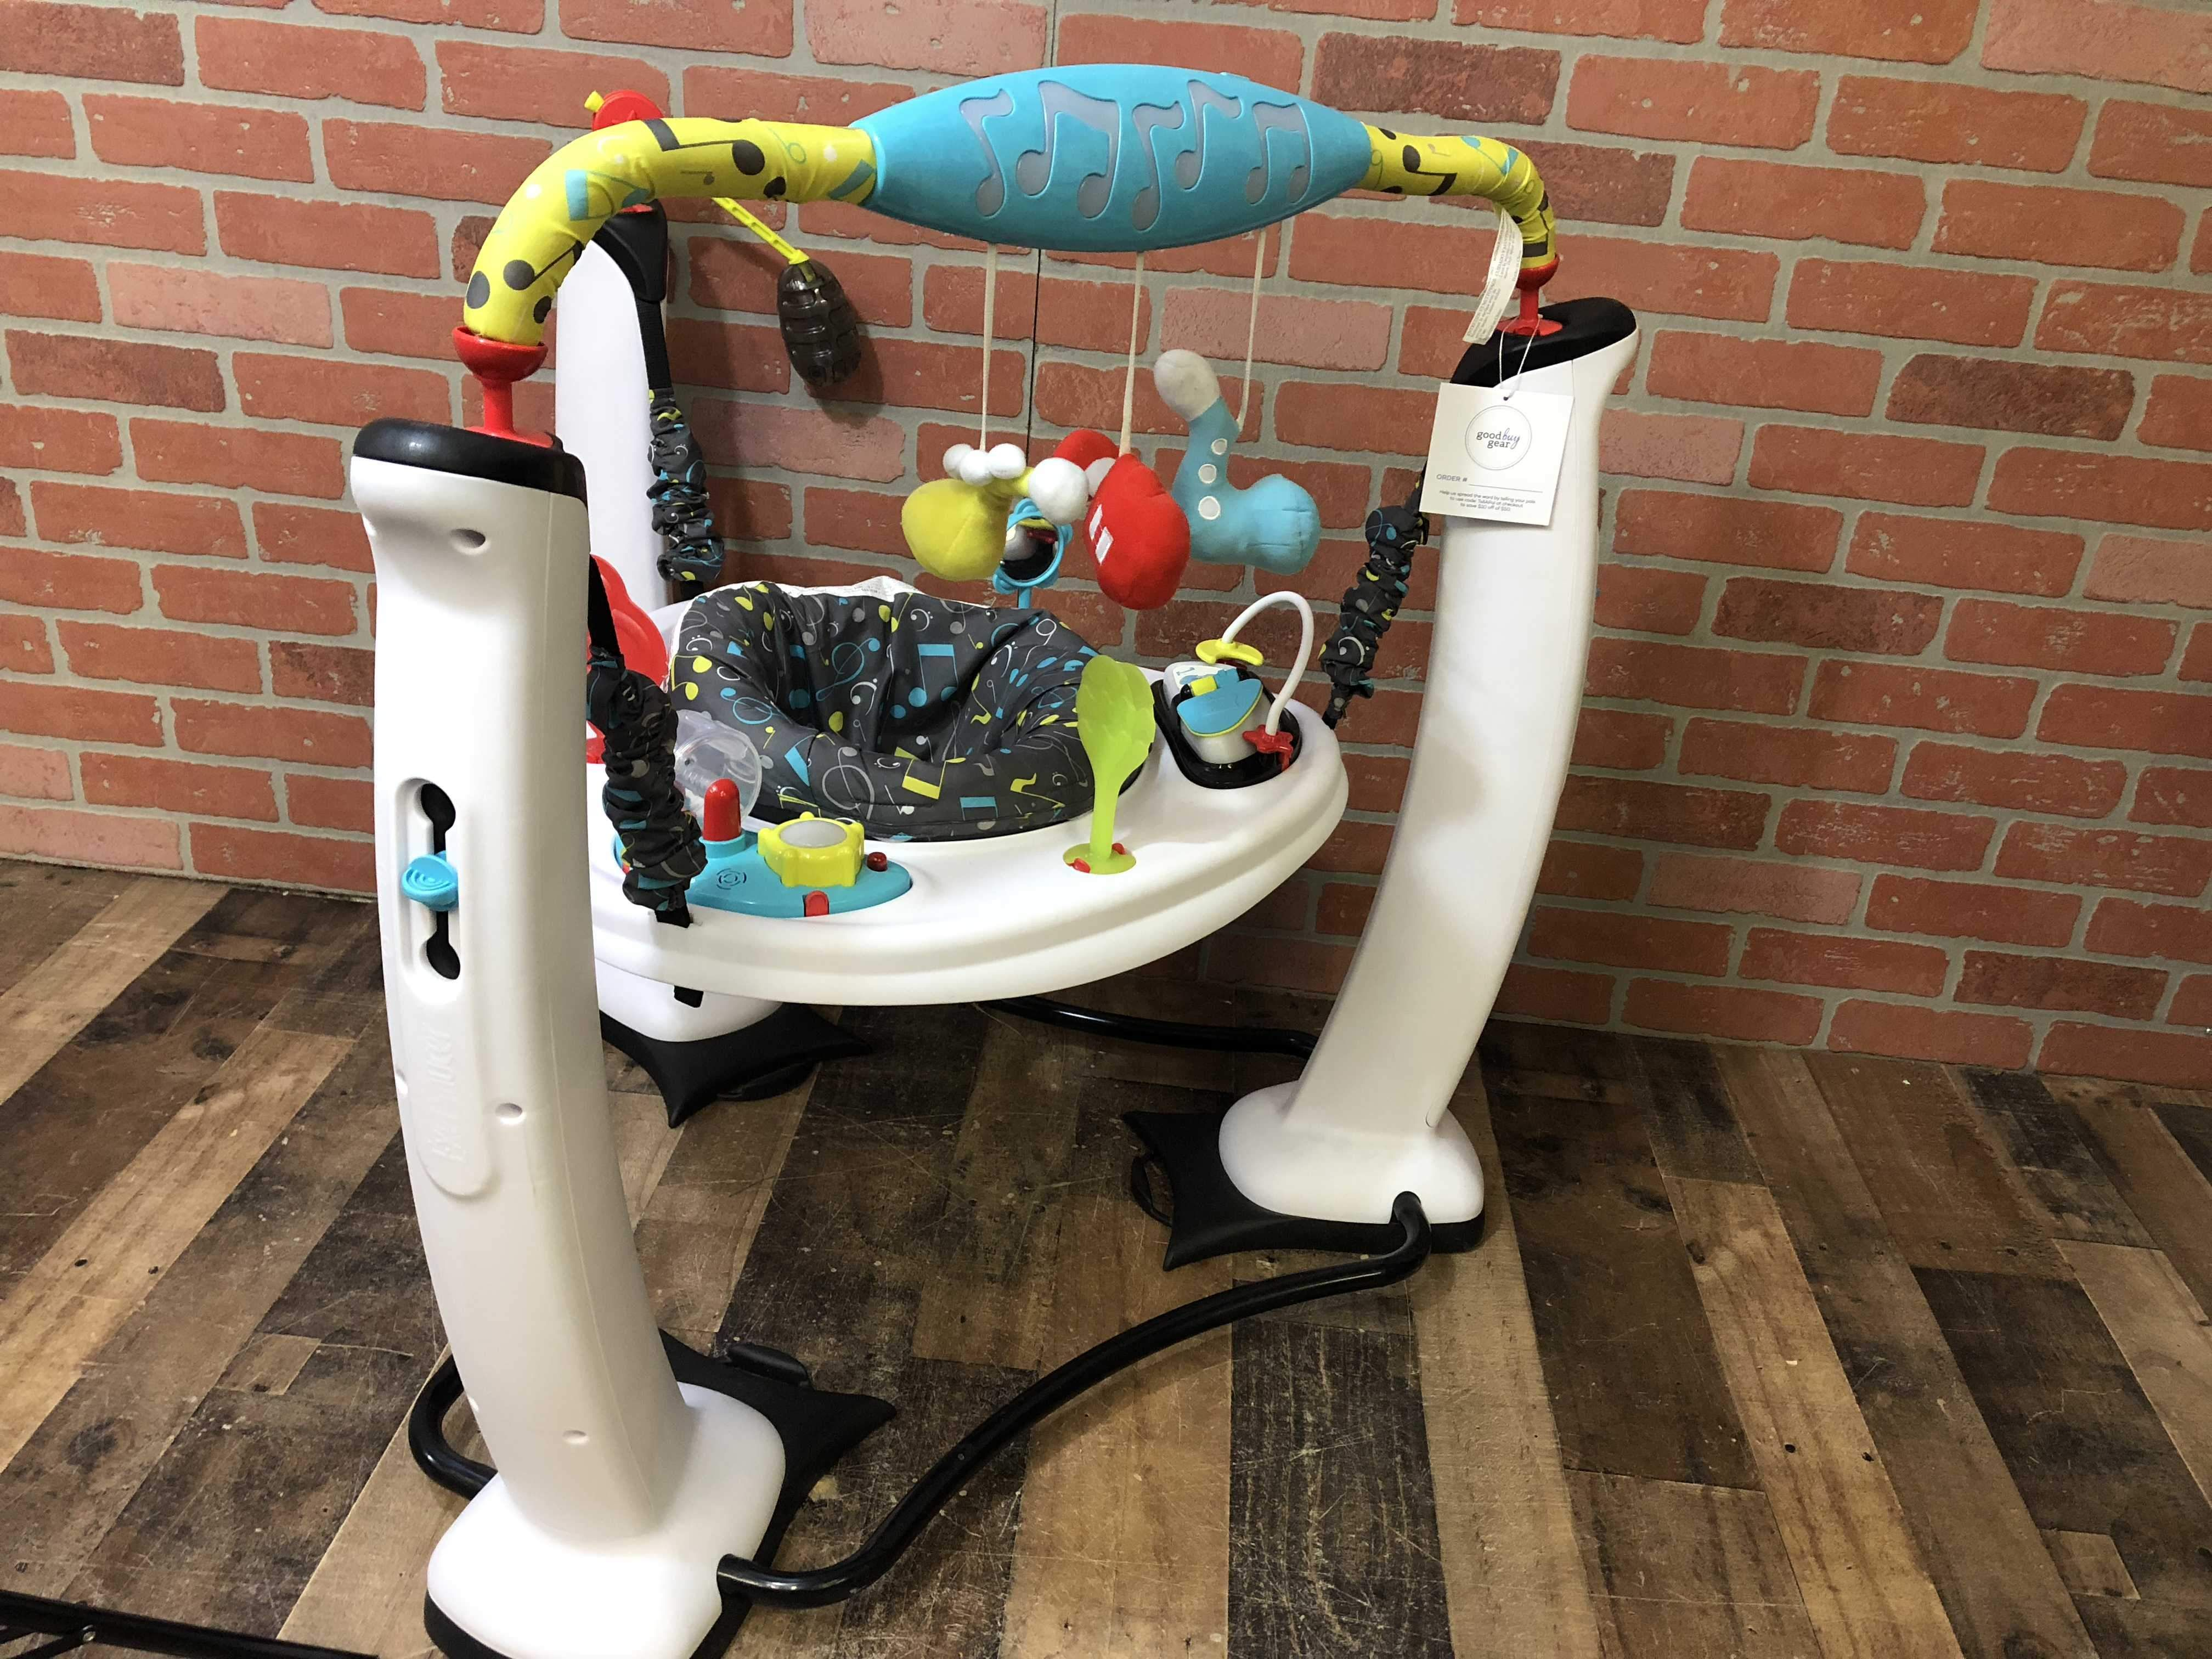 e9451c7b8 Evenflo ExerSaucer Jump And Learn Activity Center Jam Session